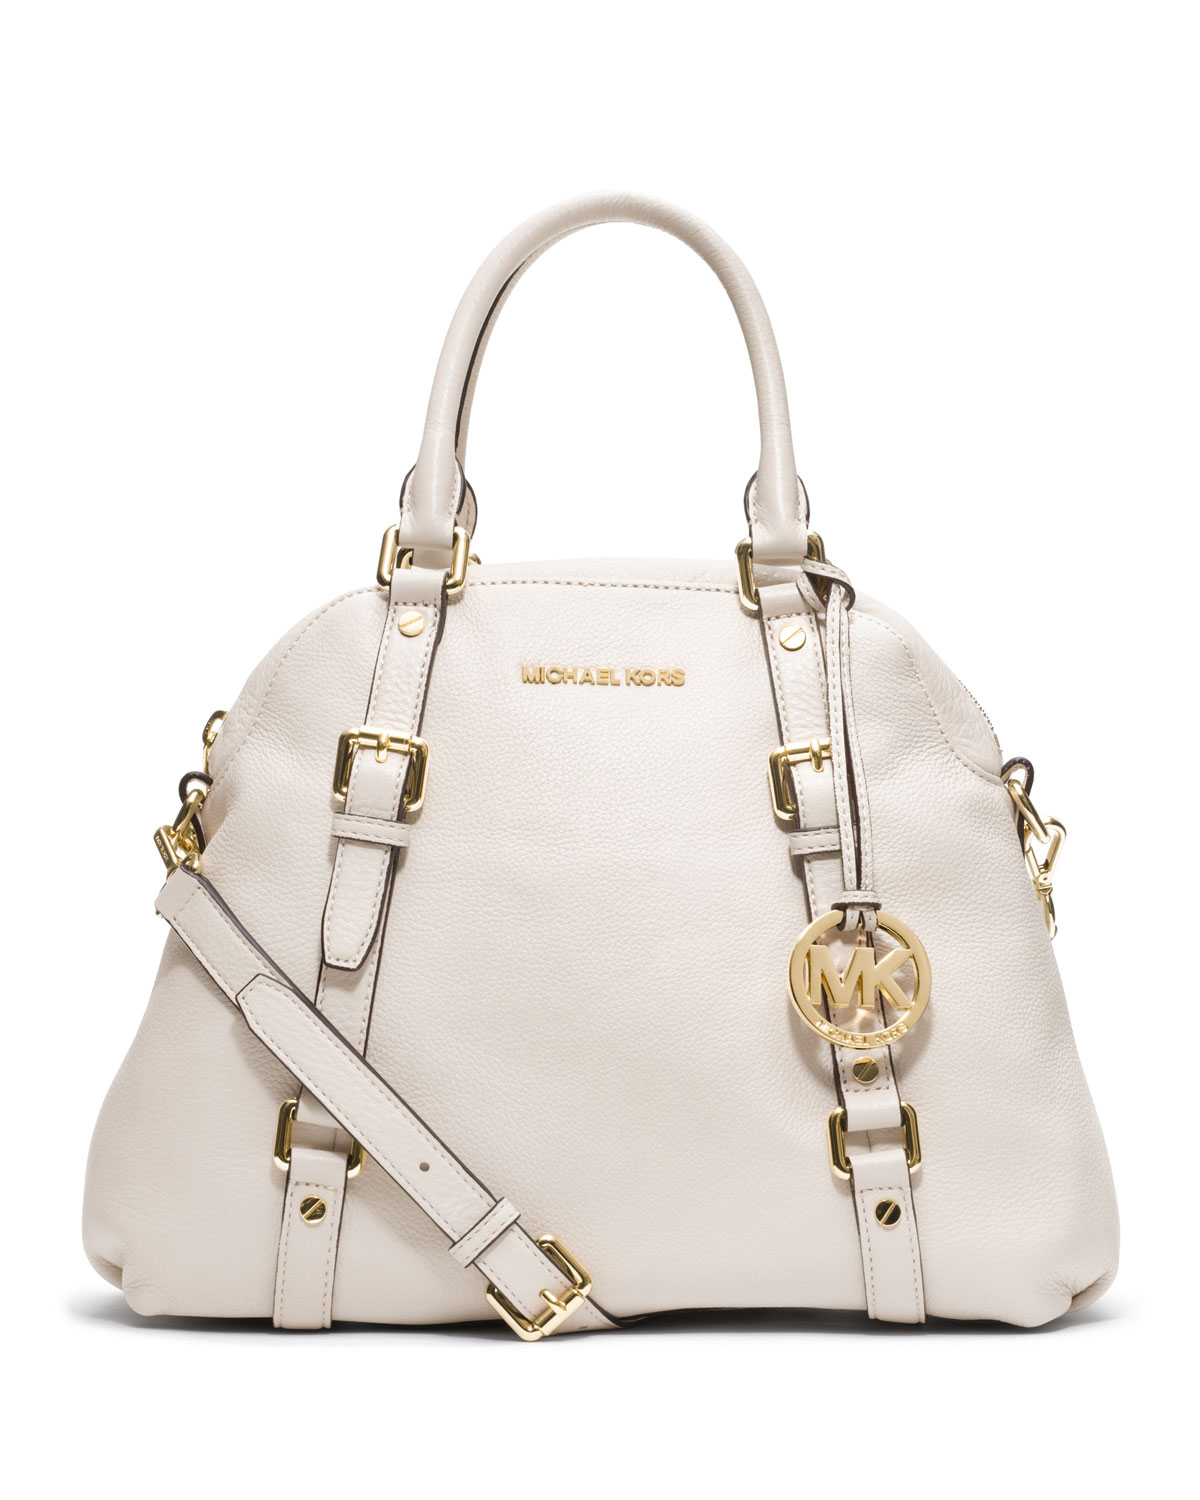 75eb918a49f9 ... 50% off lyst michael kors large bedford bowling satchel in white 6464d  c1cfd